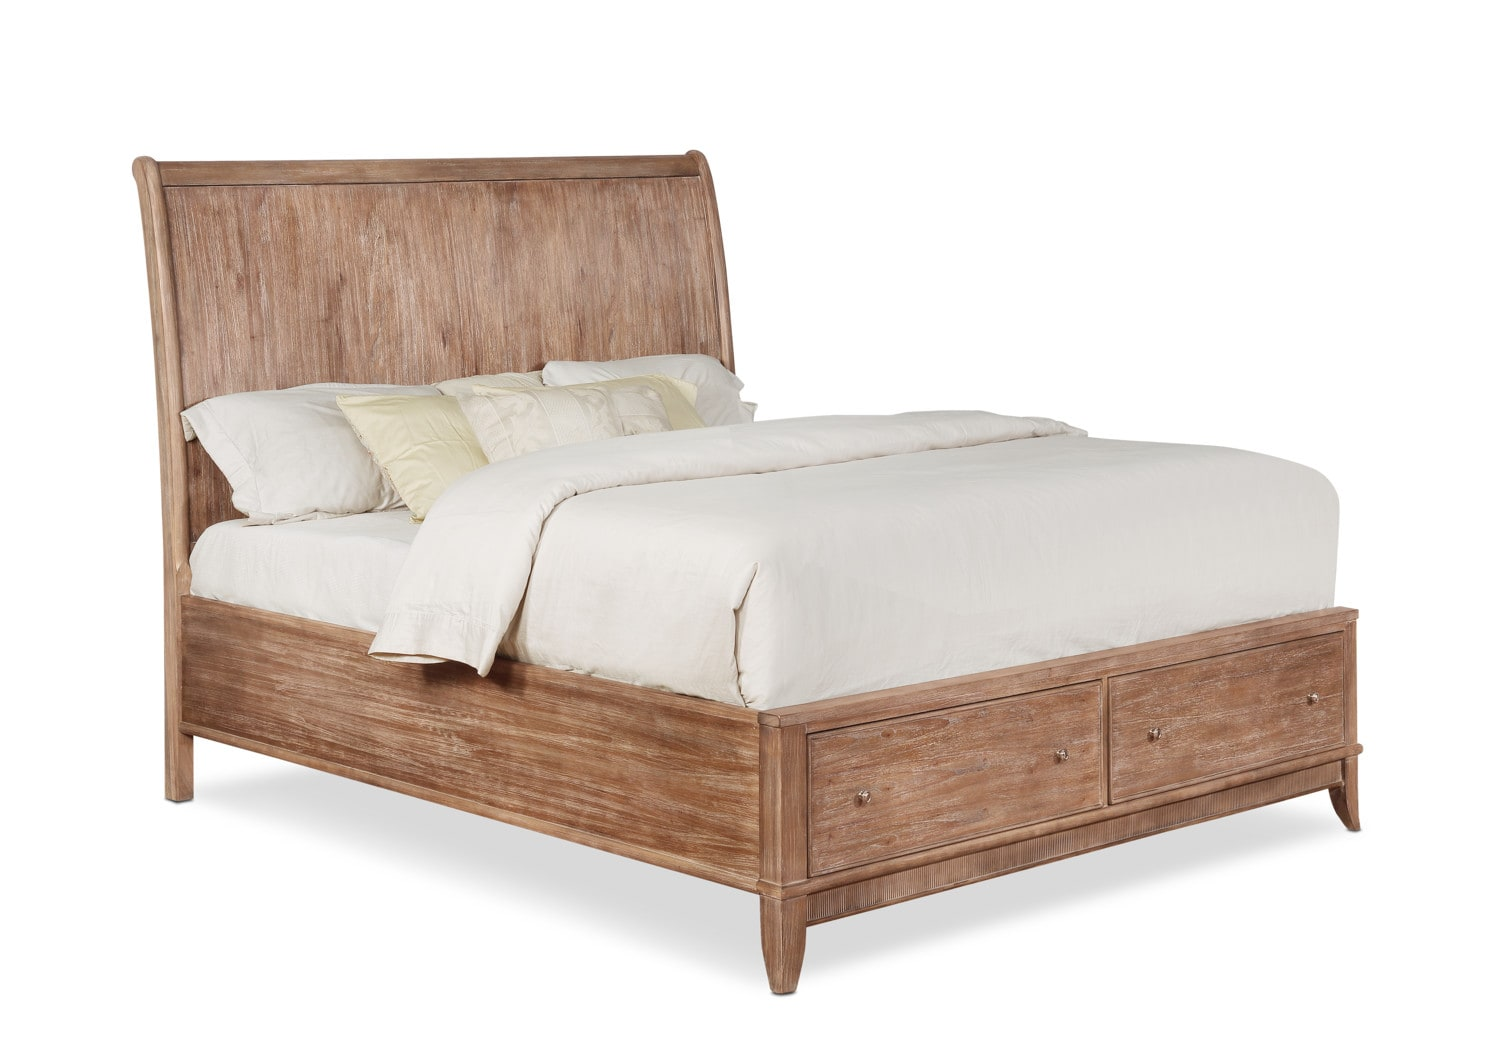 Bedroom Furniture - Hazel Storage Bed